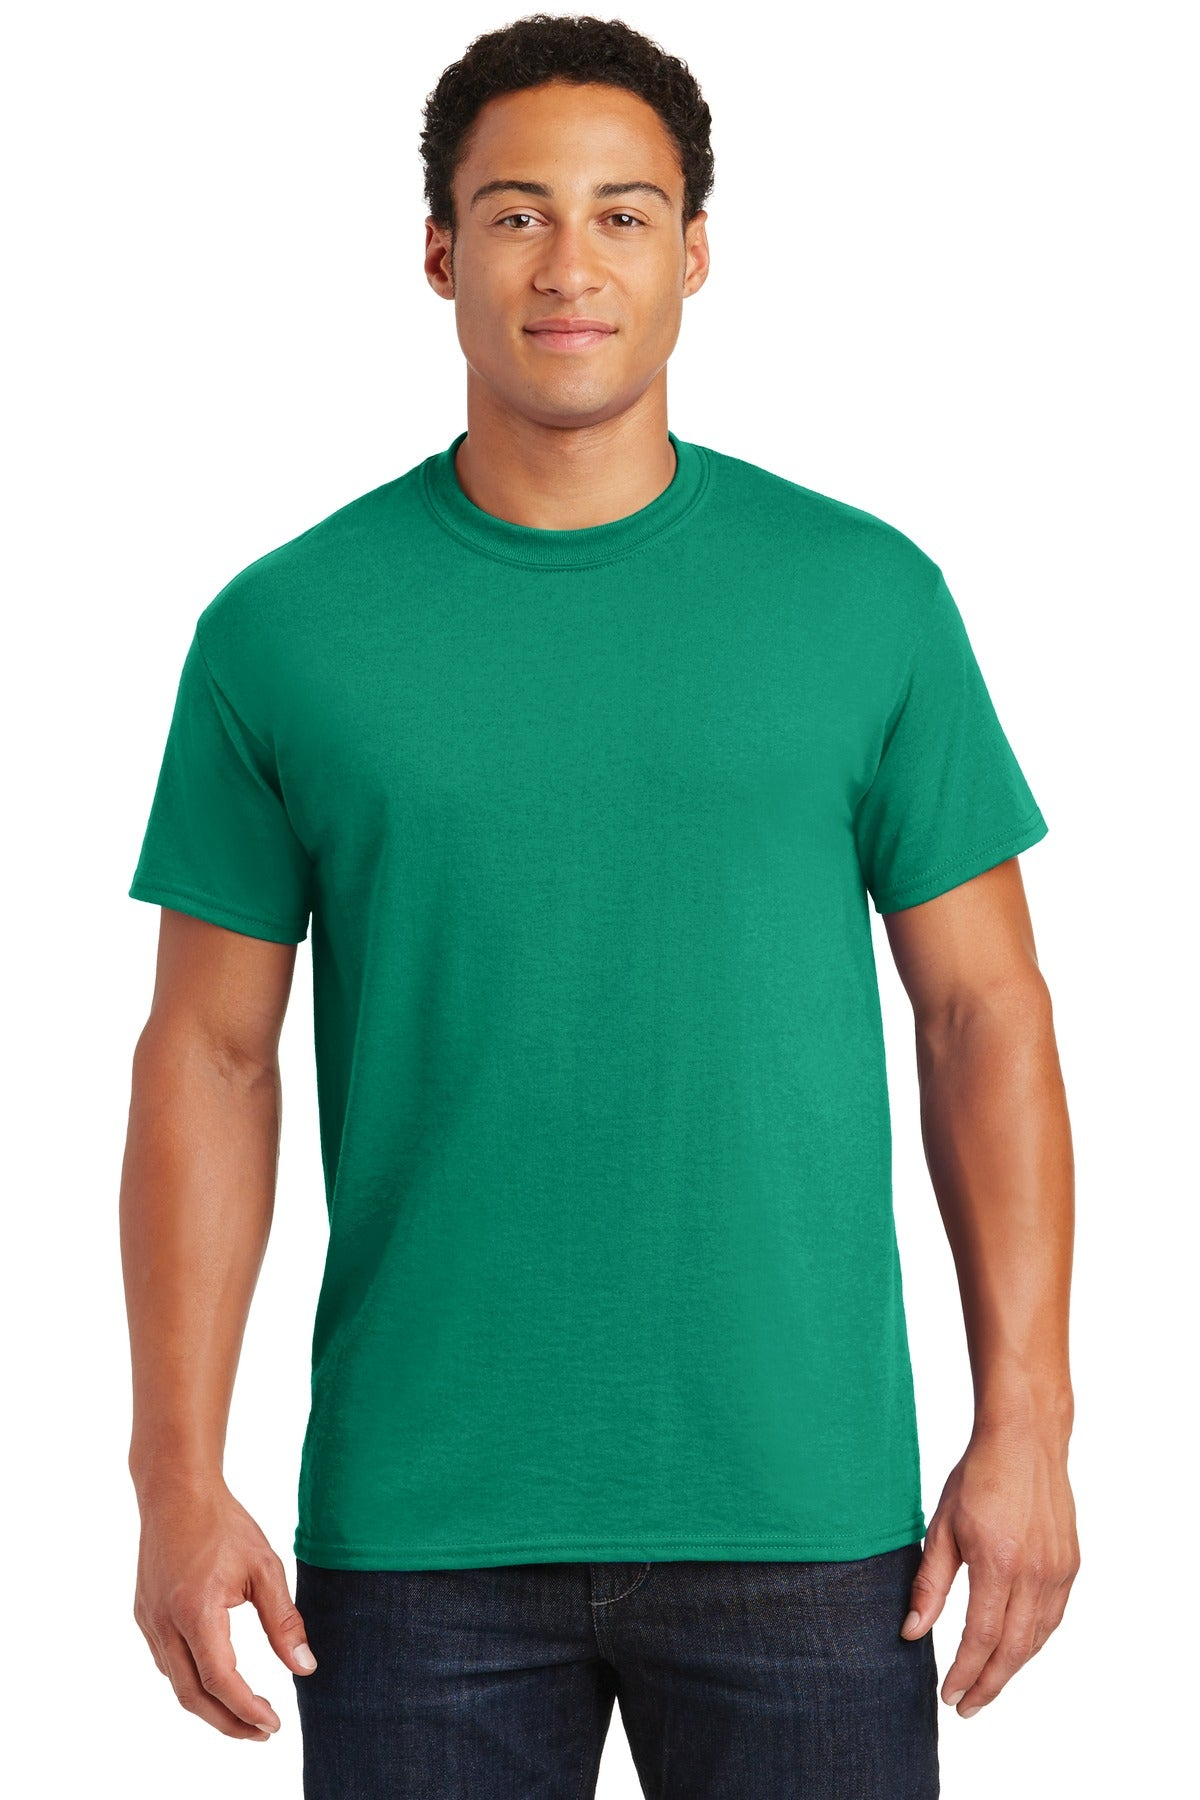 Kelly Green Gildan DryBlend 50 Cotton/50 Poly T-Shirt.